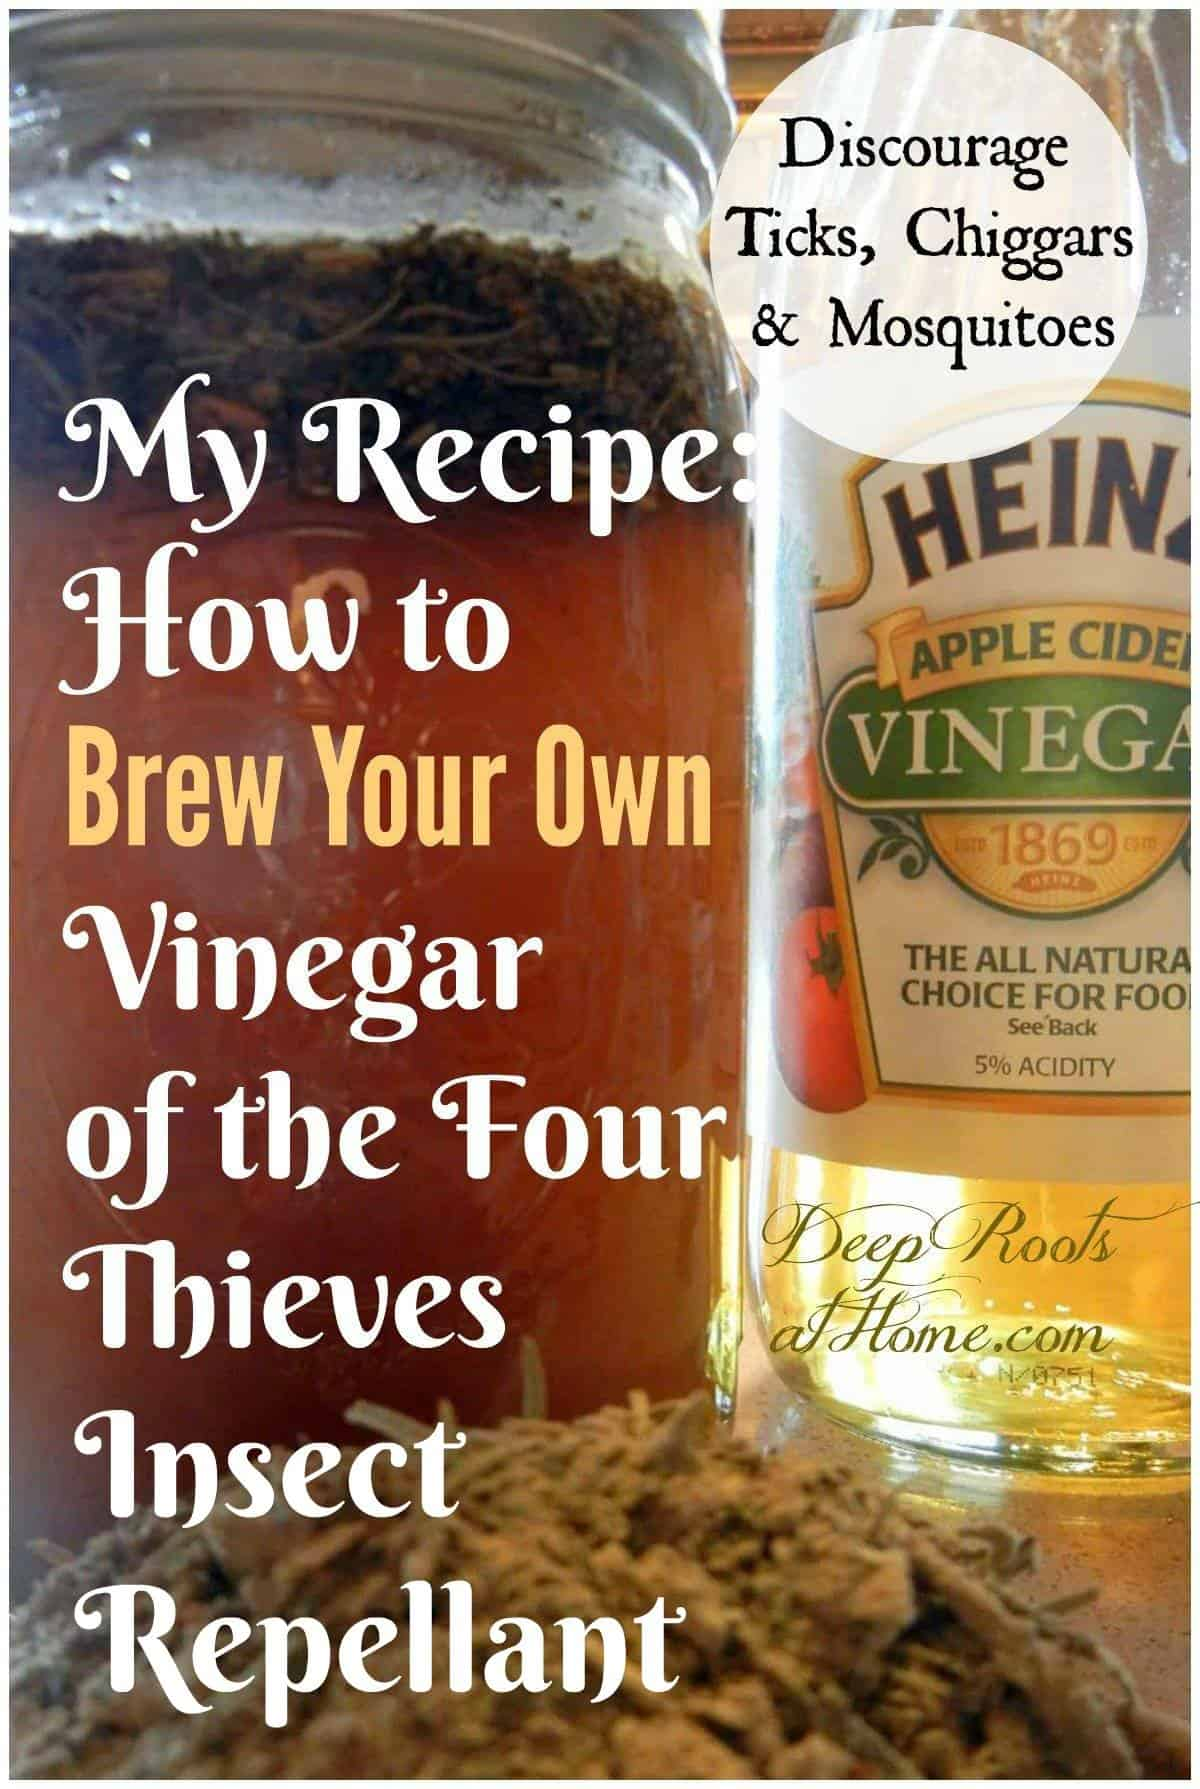 Insect Repellant: Vinegar of the Four Thieves for Chiggers, Mosquitoes. A diy natural insect repellent of dried herbs